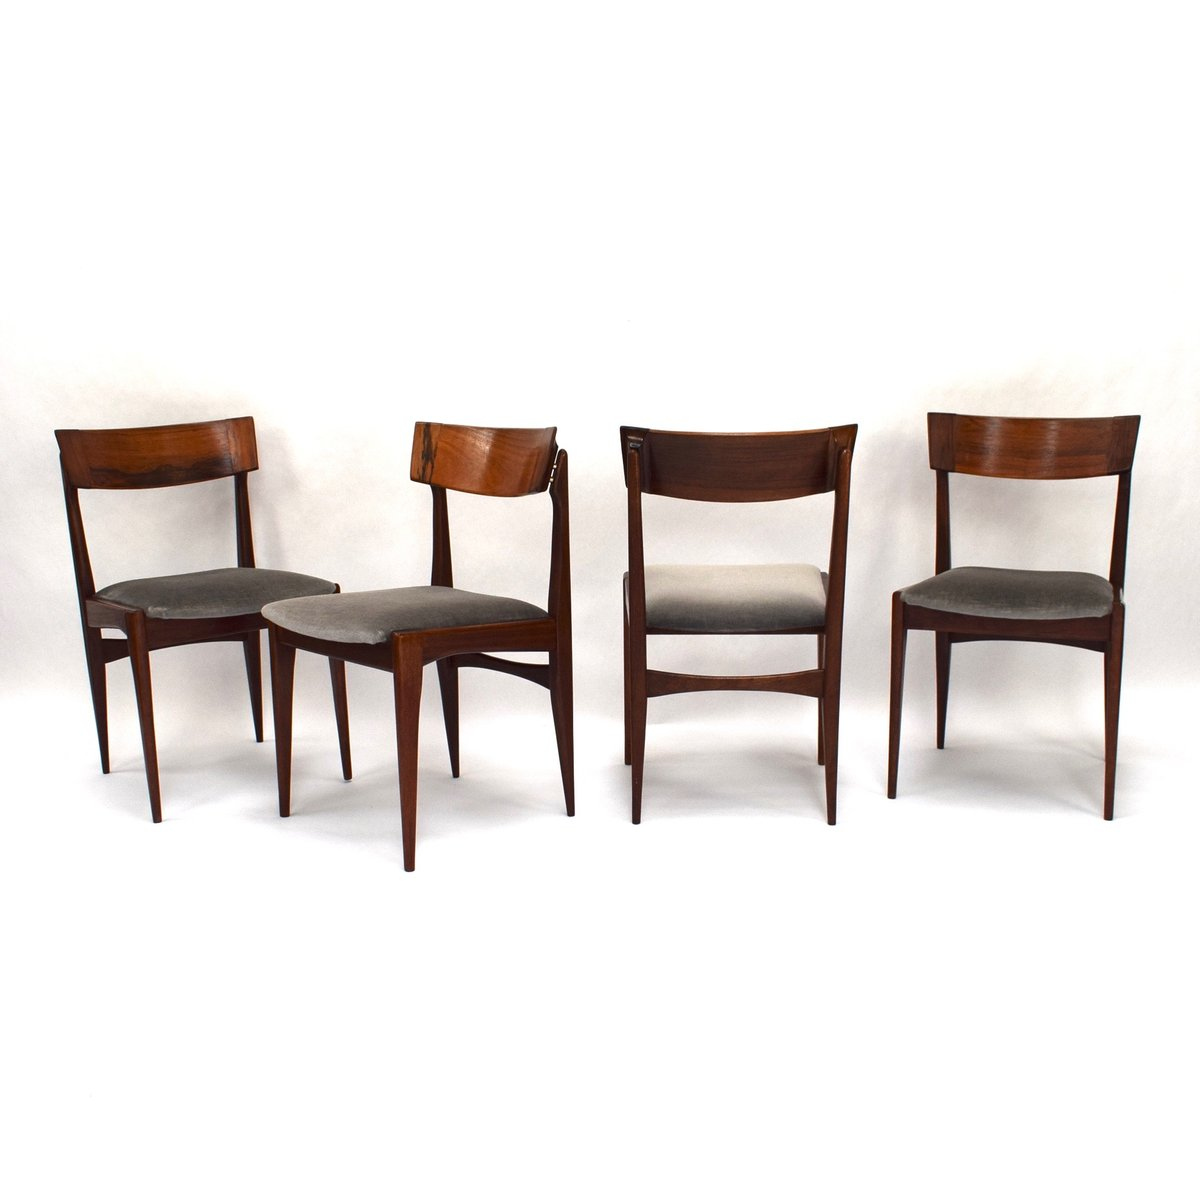 mid century brazilian rosewood dining chairs set of 4 for sale at pamono. Black Bedroom Furniture Sets. Home Design Ideas